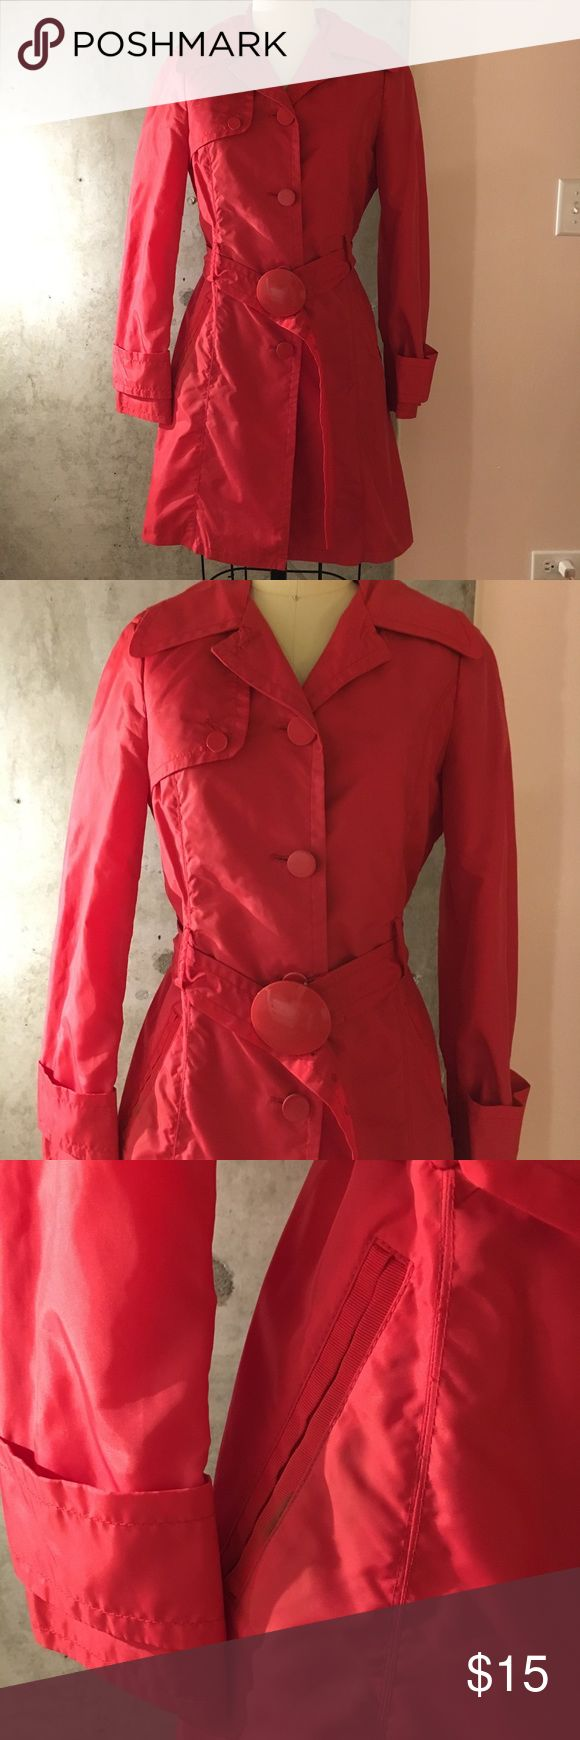 Mango Red Trench Coat Mango Red Trench Coat Mango Jackets & Coats Trench Coats